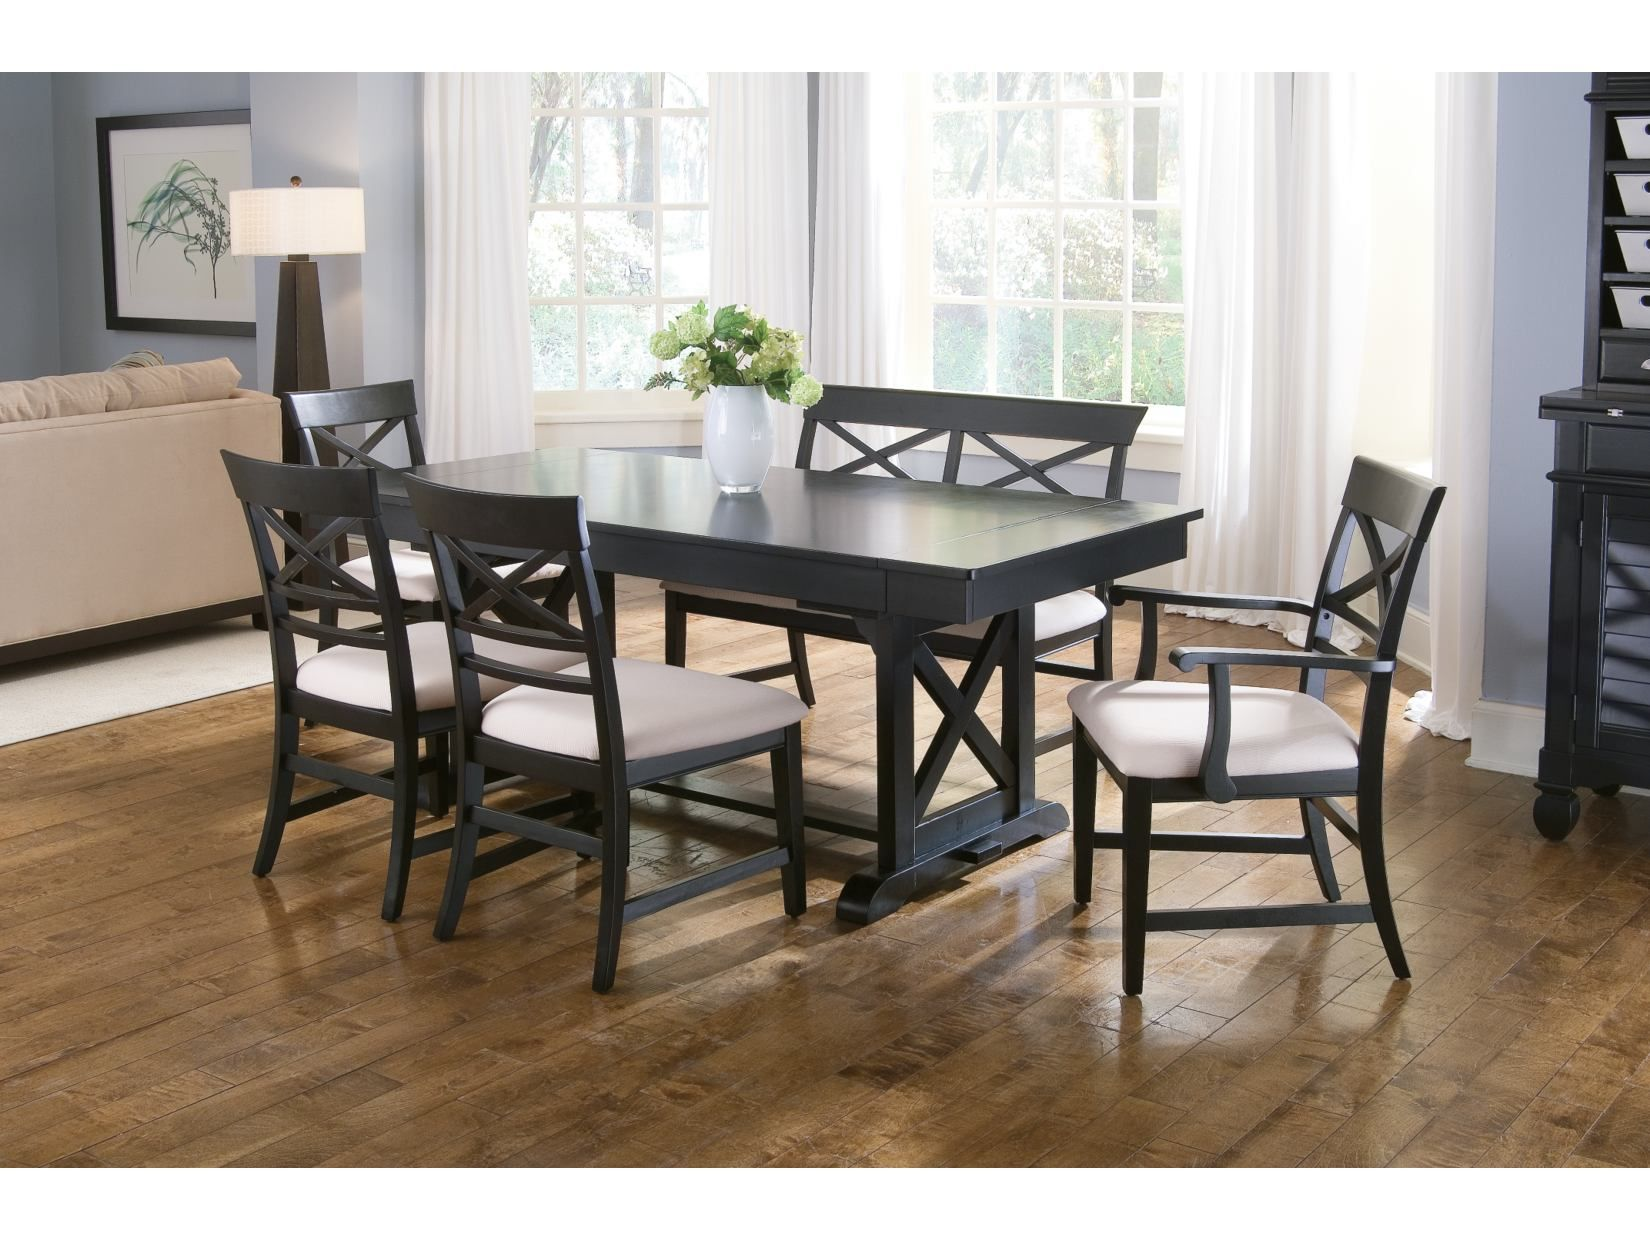 Plantation Cove 5 PC Black Dinette